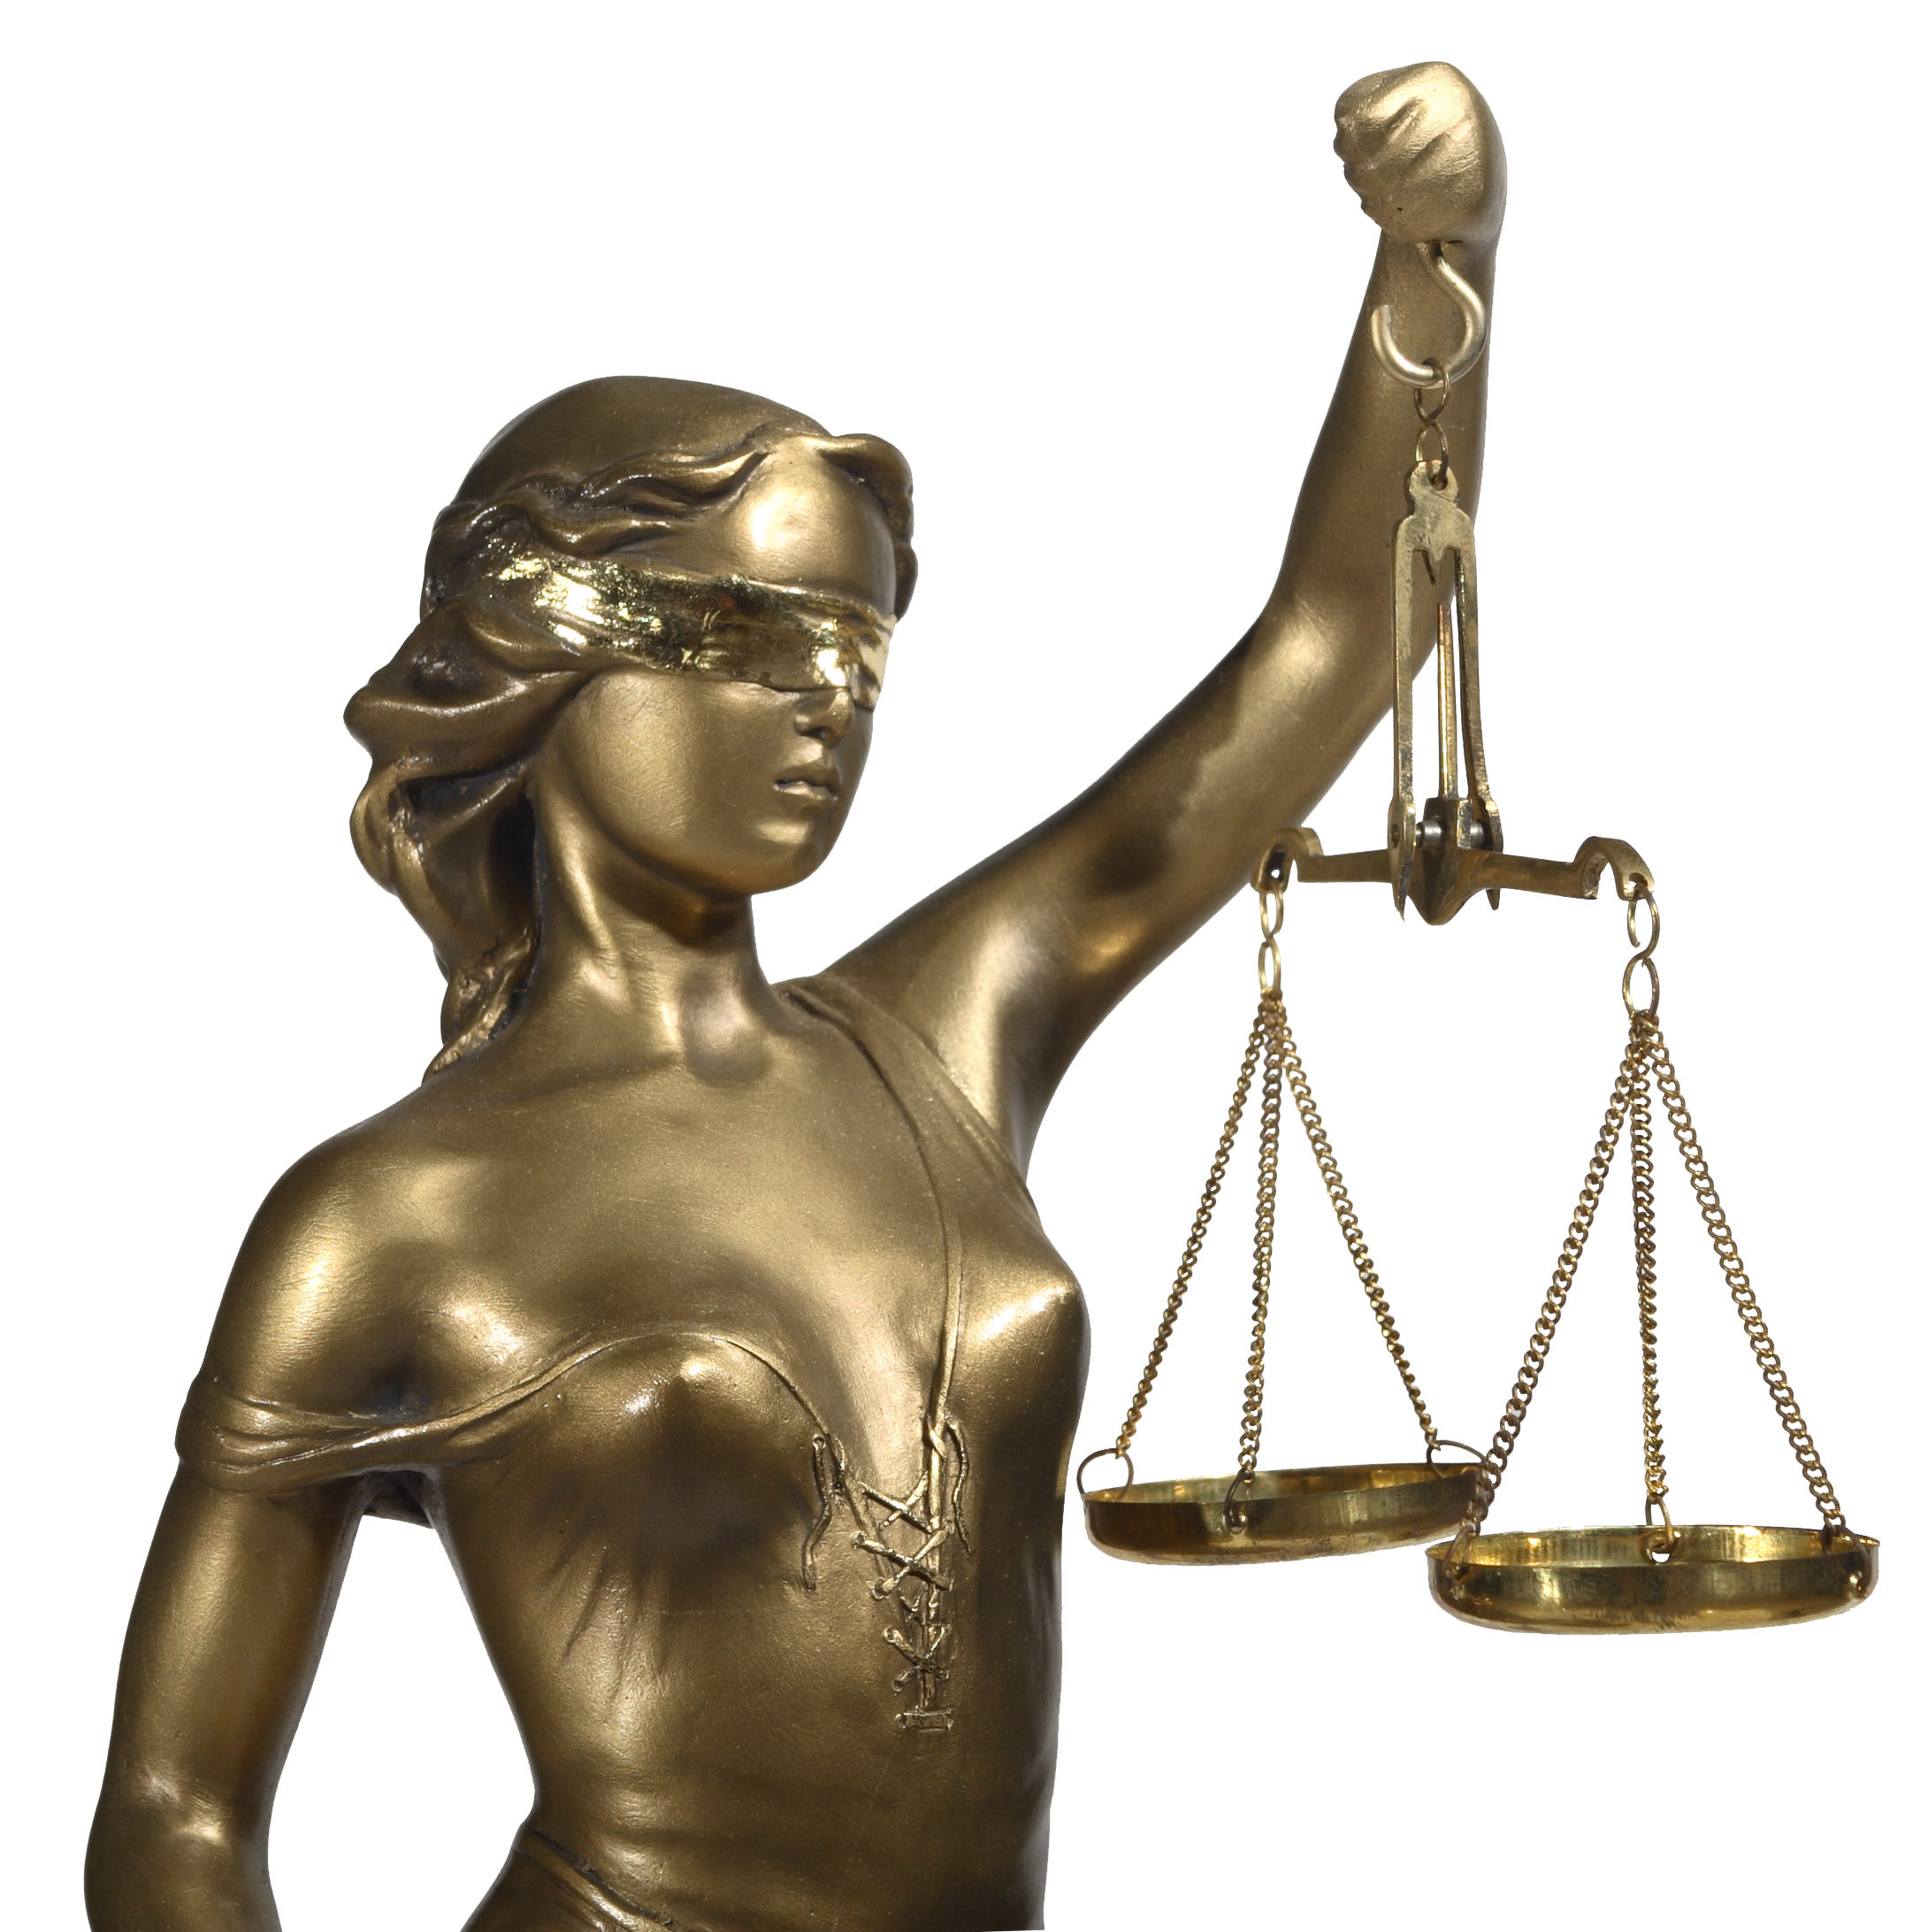 Procedural fairness vis-a-vis natural justice